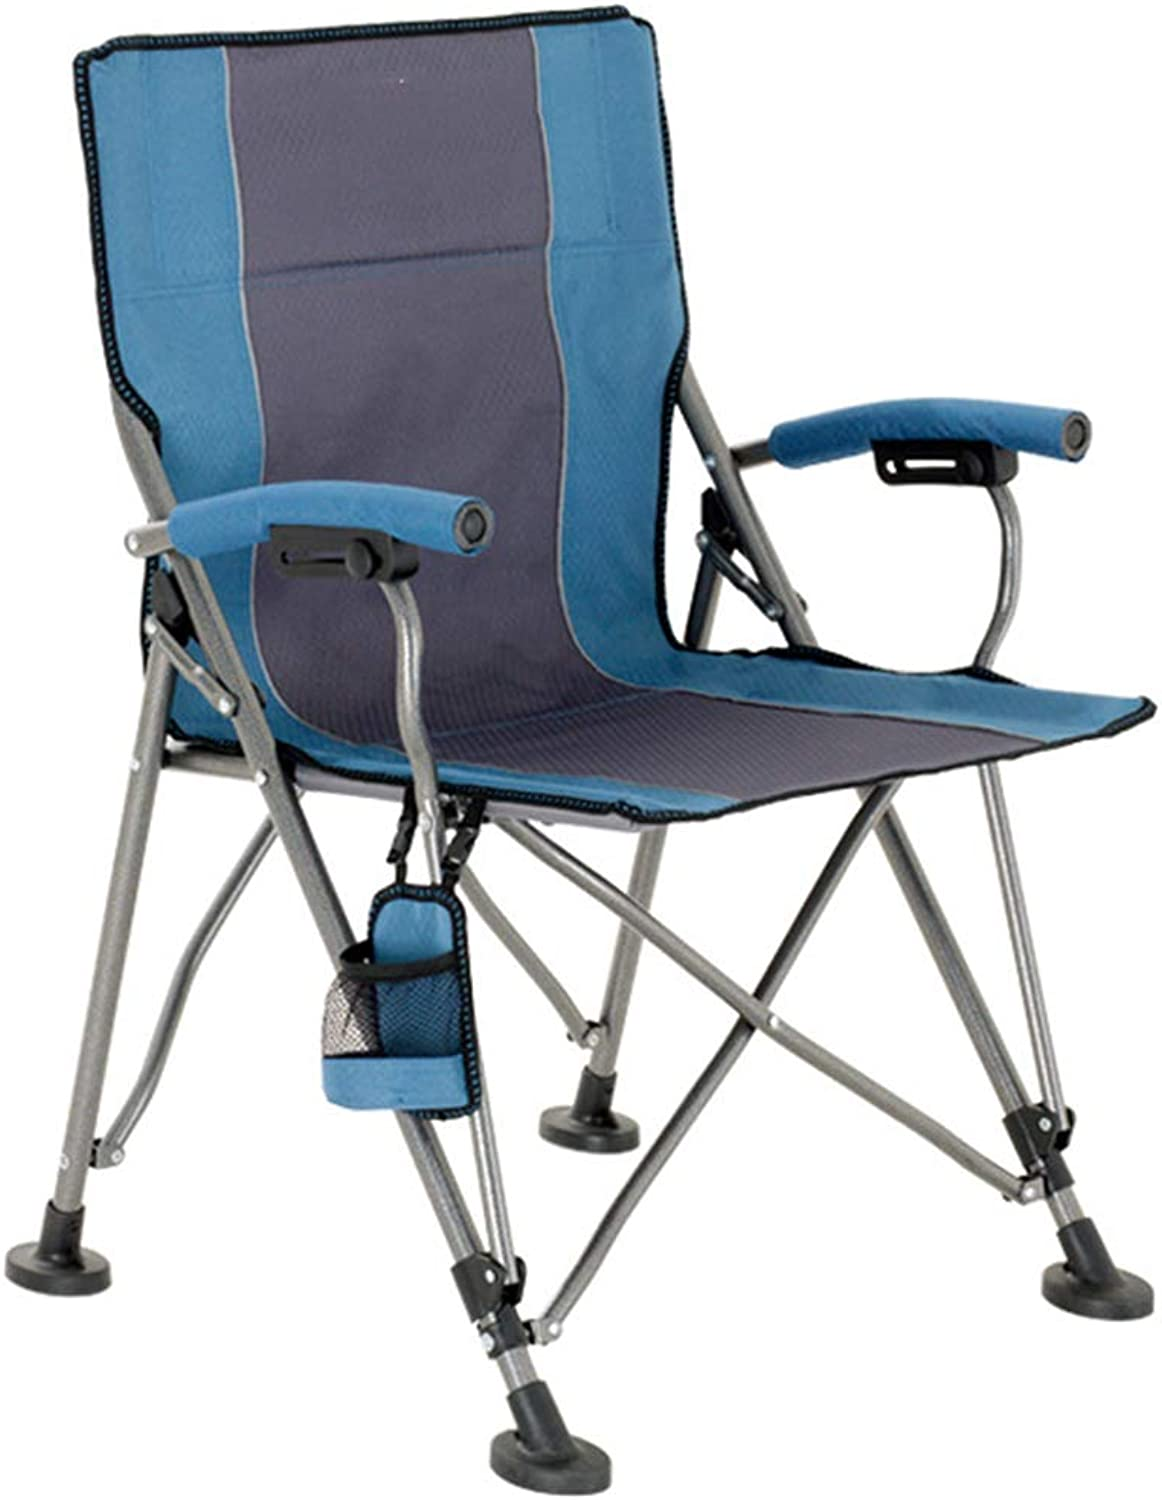 Outdoor Portable Folding Chair, Armrest Folding Computer Chair, with Cup Holder Beach Chair SelfDriving MultiFunction Portable Camping Chair